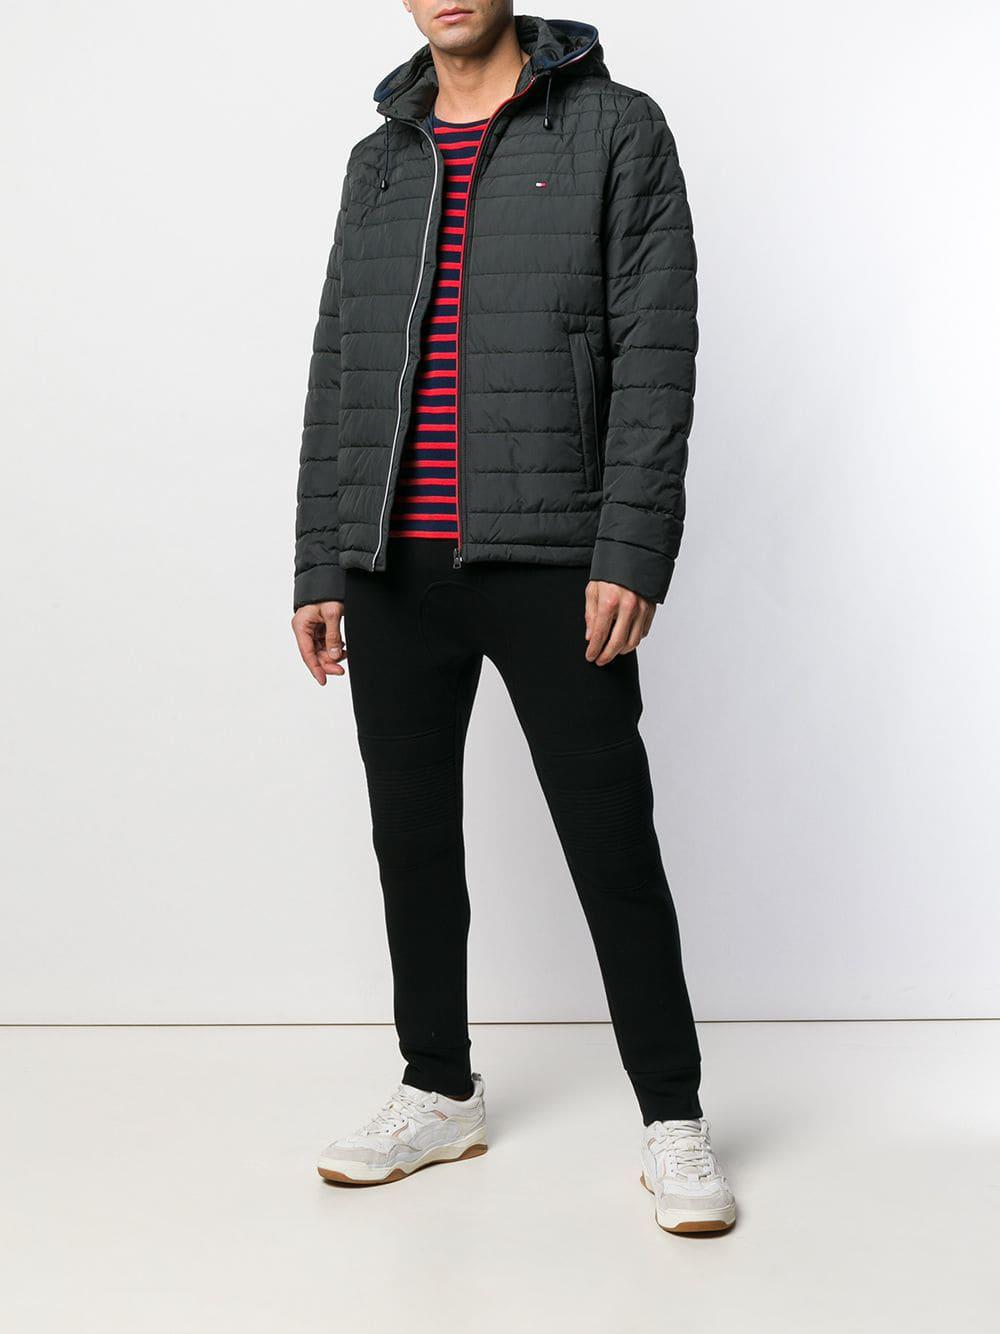 Tommy Hilfiger Quilted Hooded Jacket in Black for Men - Lyst